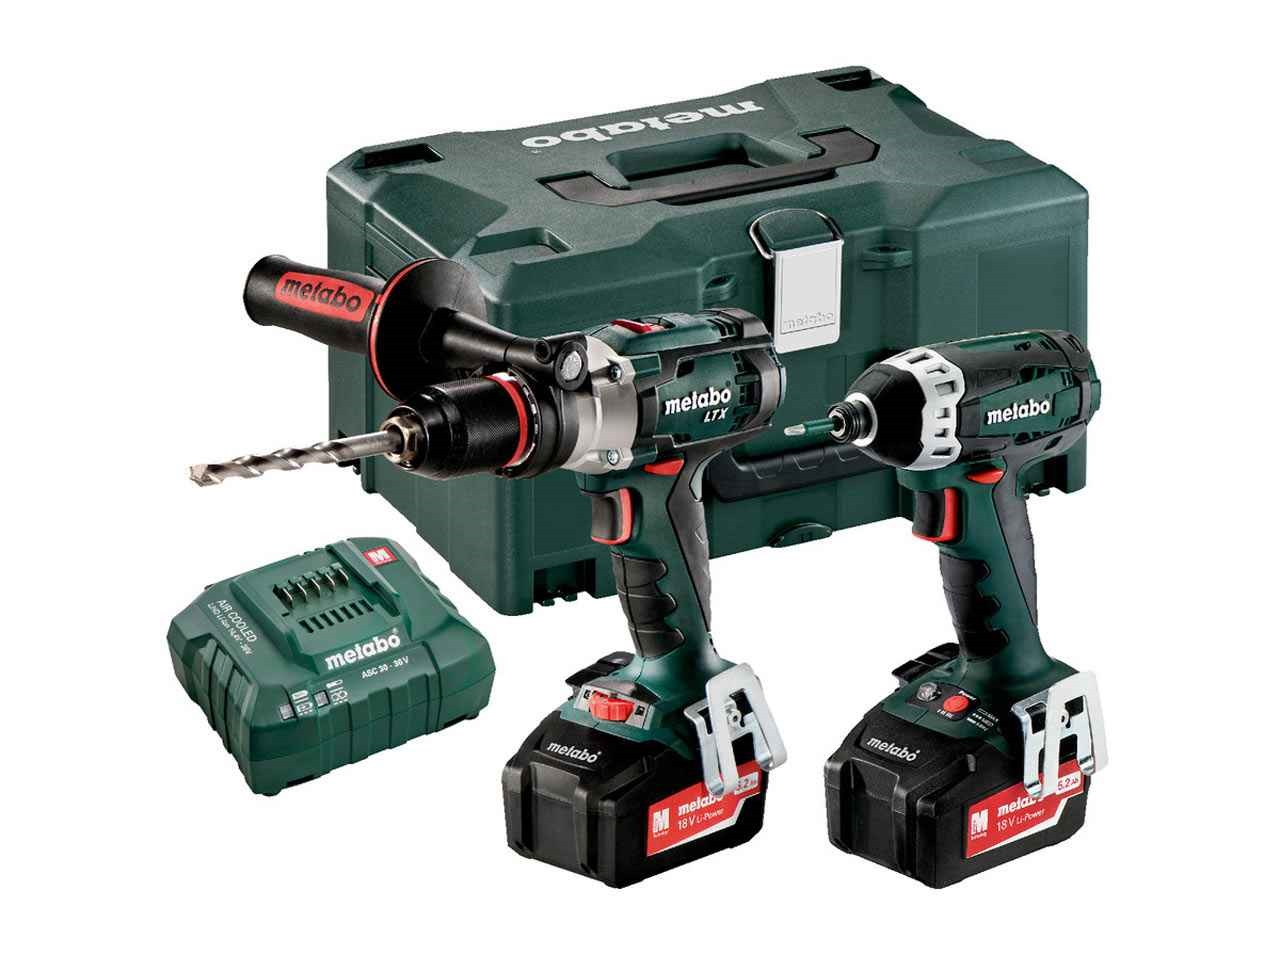 metabo comboset 2 1 5 18v 2x5 2ah ltx hammer drill and impact driver kit. Black Bedroom Furniture Sets. Home Design Ideas